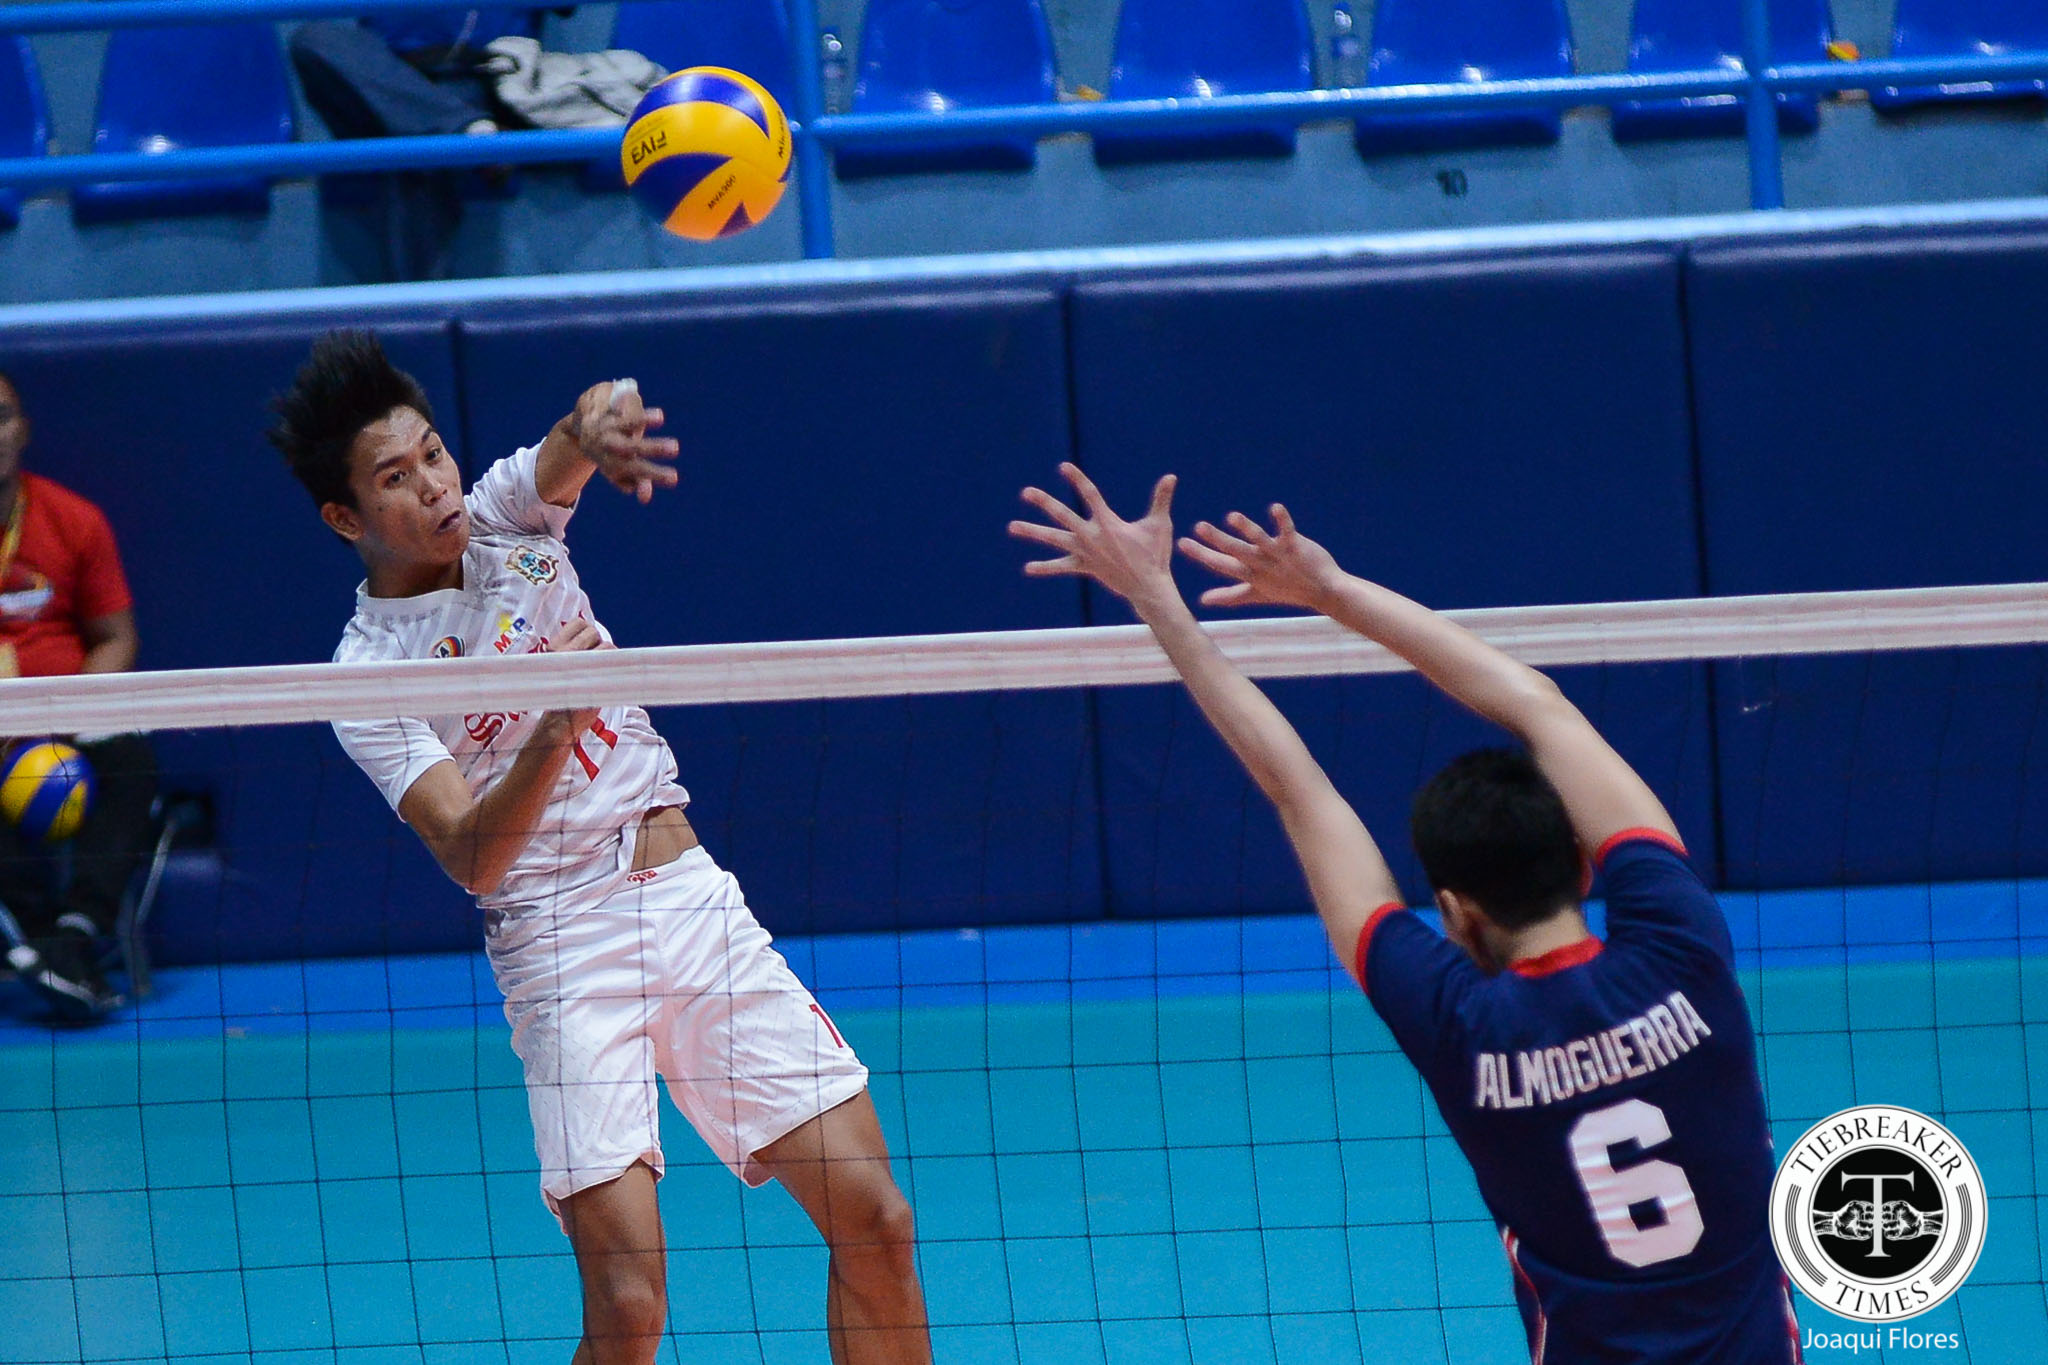 Tiebreaker Times San Beda fends off Letran for back-to-back wins CSJL NCAA News SBC Volleyball  San Beda Men's Volleyball Rodel Casin Nes Pamilar NCAA Season 93 Men's Volleyball NCAA Season 93 Mark Enciso Limuel Patenio Letran Men's Volleyball JC Desuyo Brian Esquibel Bobby Gatdula